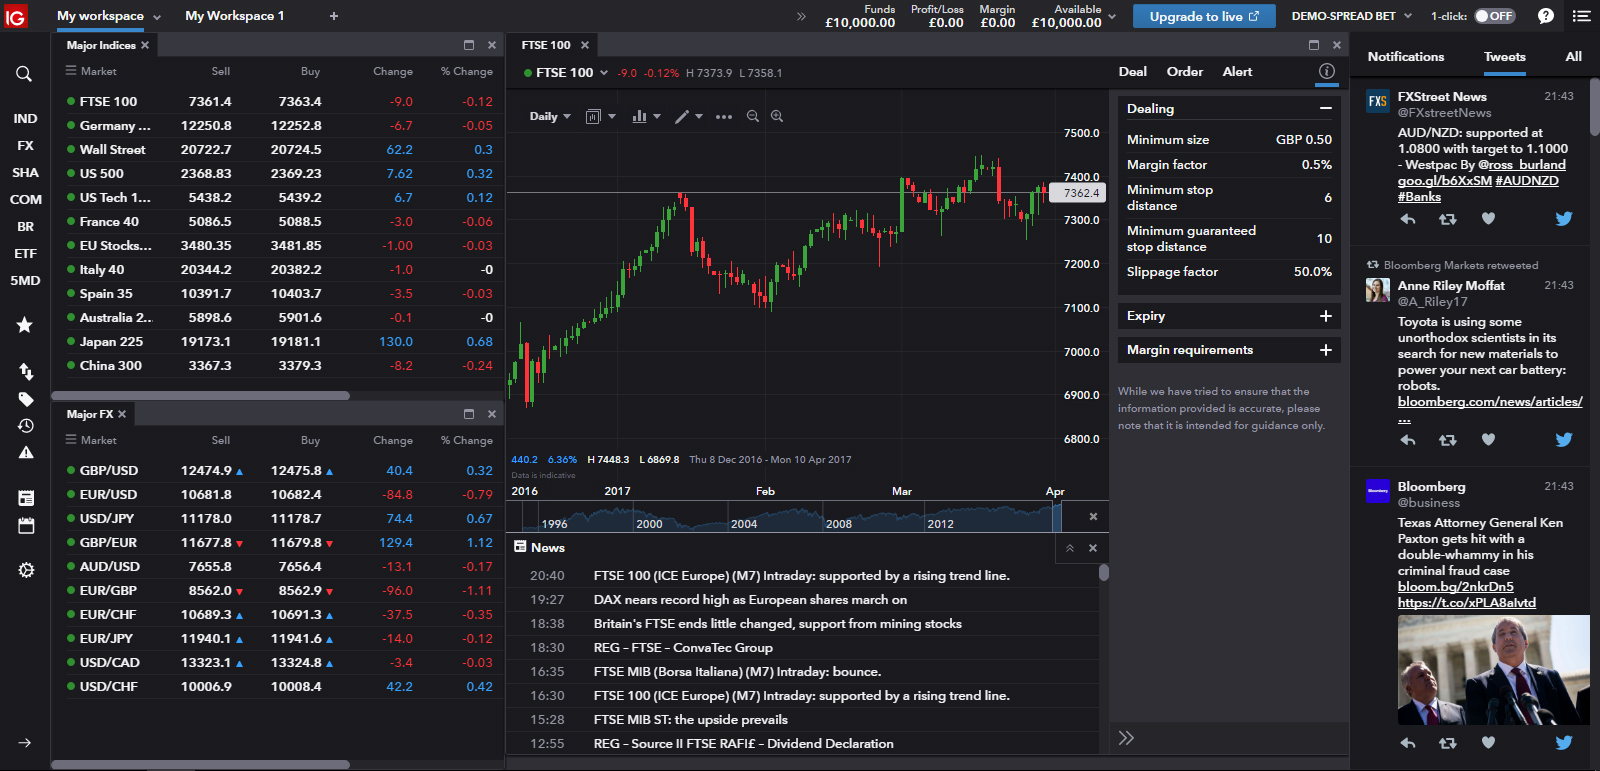 Option trading account demo